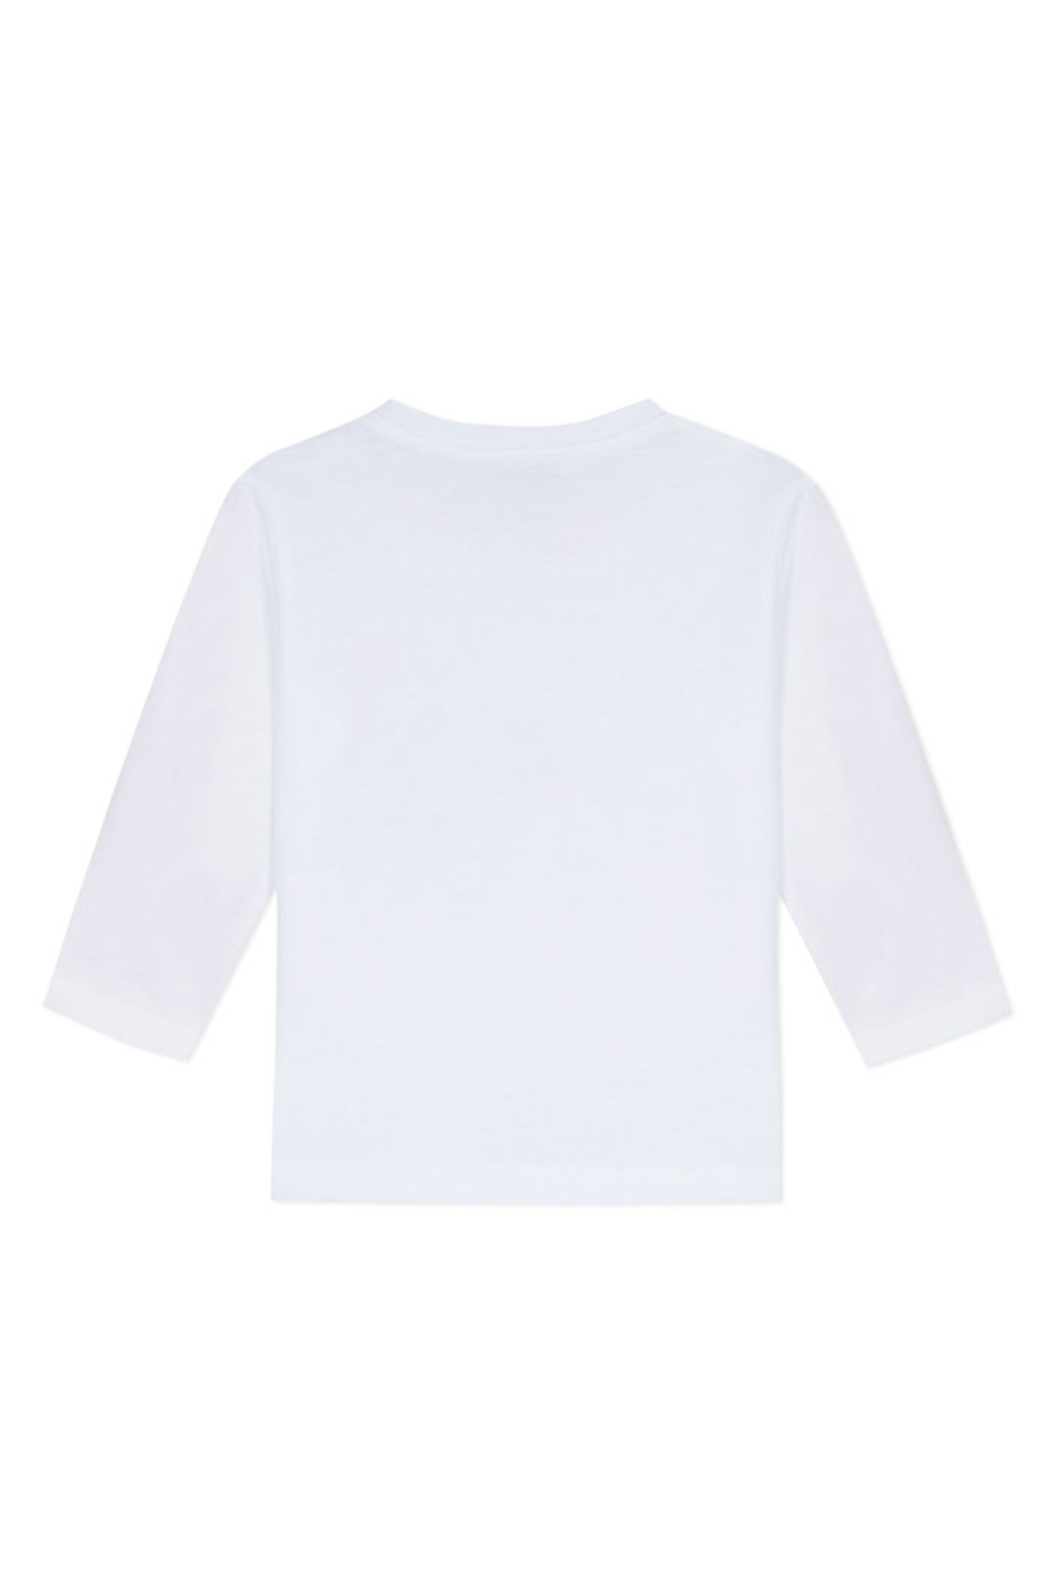 Paul Smith Junior Long Sleeve T Shirt - Front Full Image